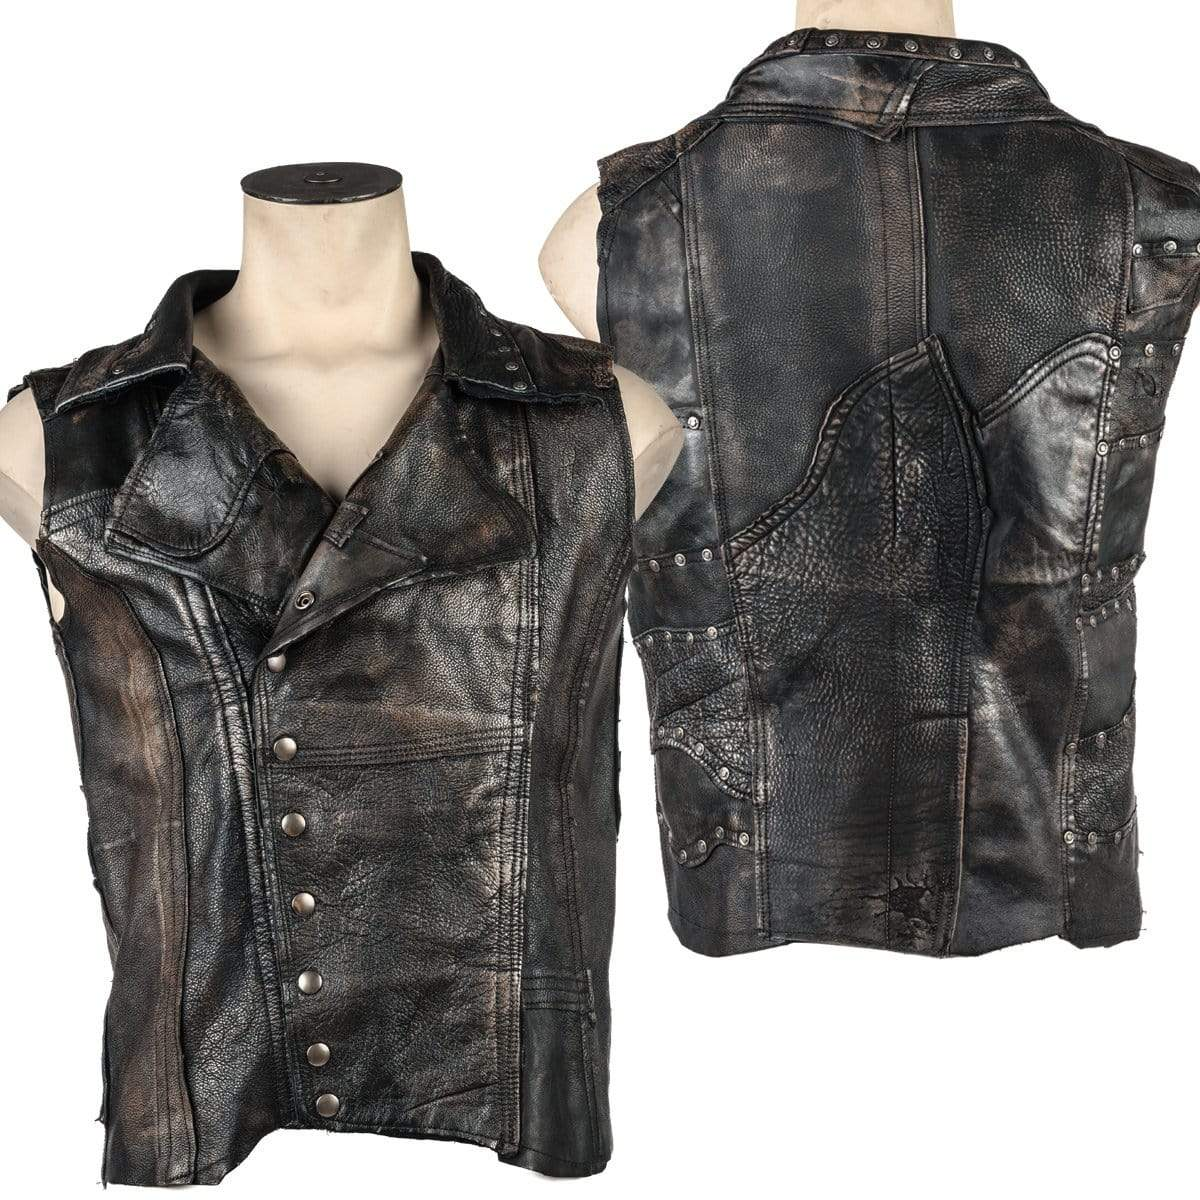 Wornstar Clothing Defender leather custom vest. Patchwork leather with hand set hardware and wash.